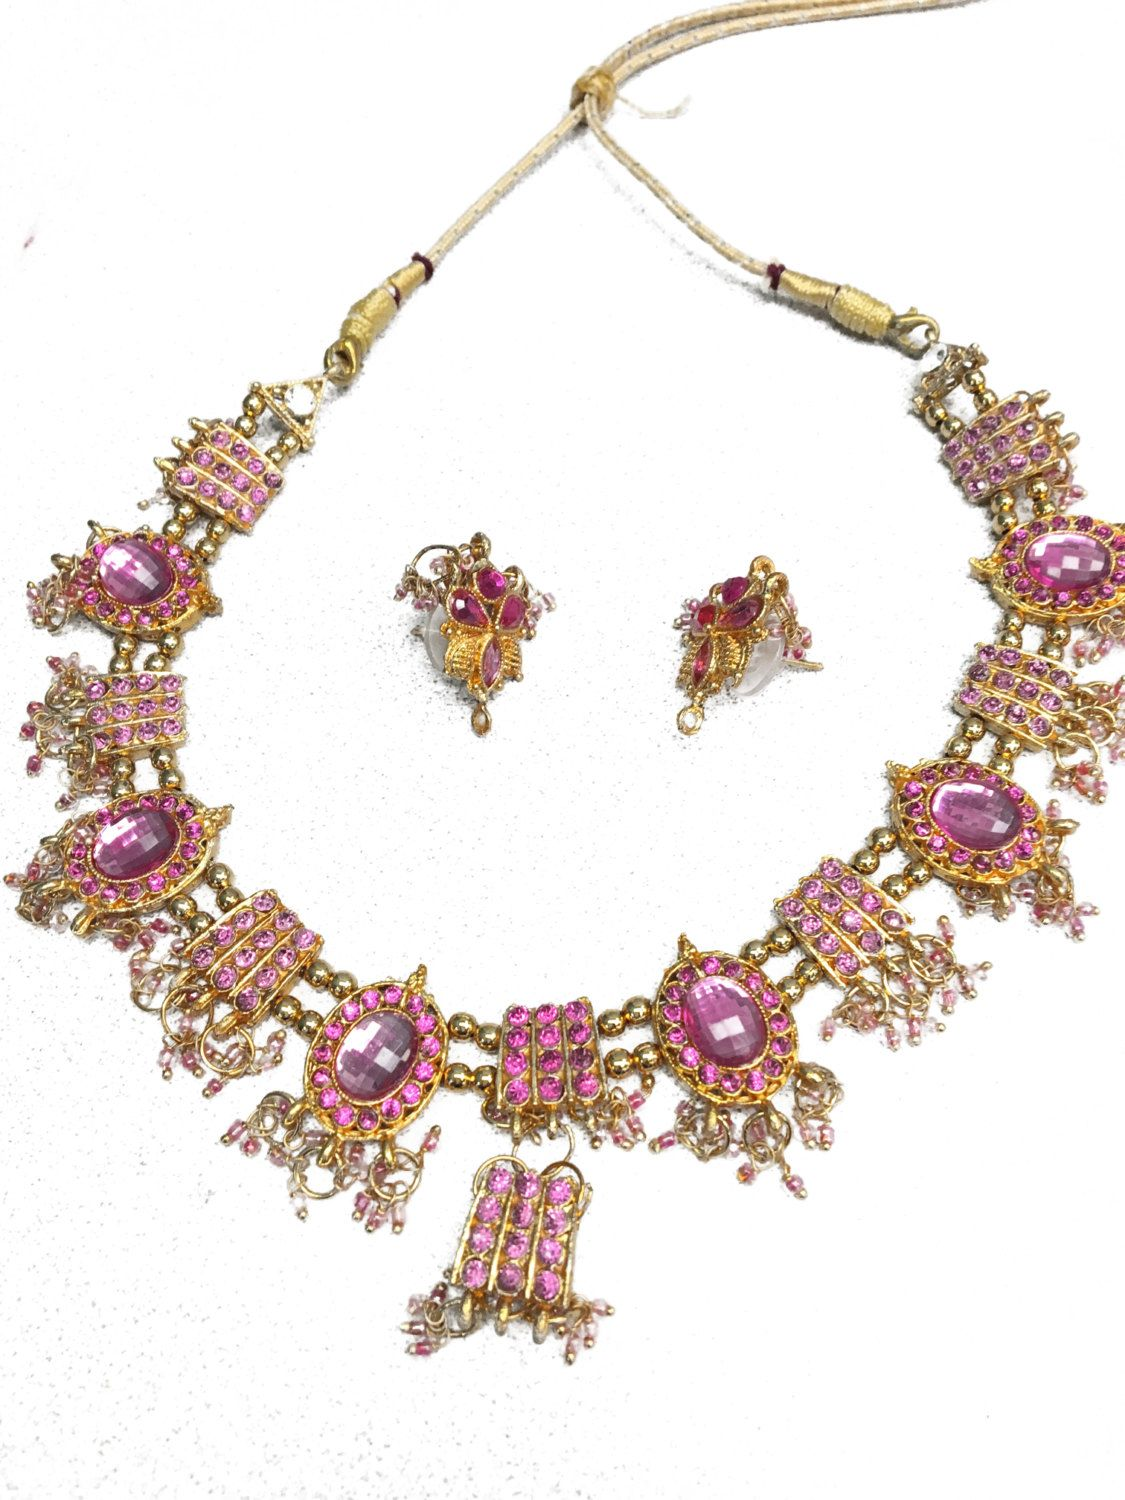 Pink kundan stone necklace set with pink and white stone pendant and